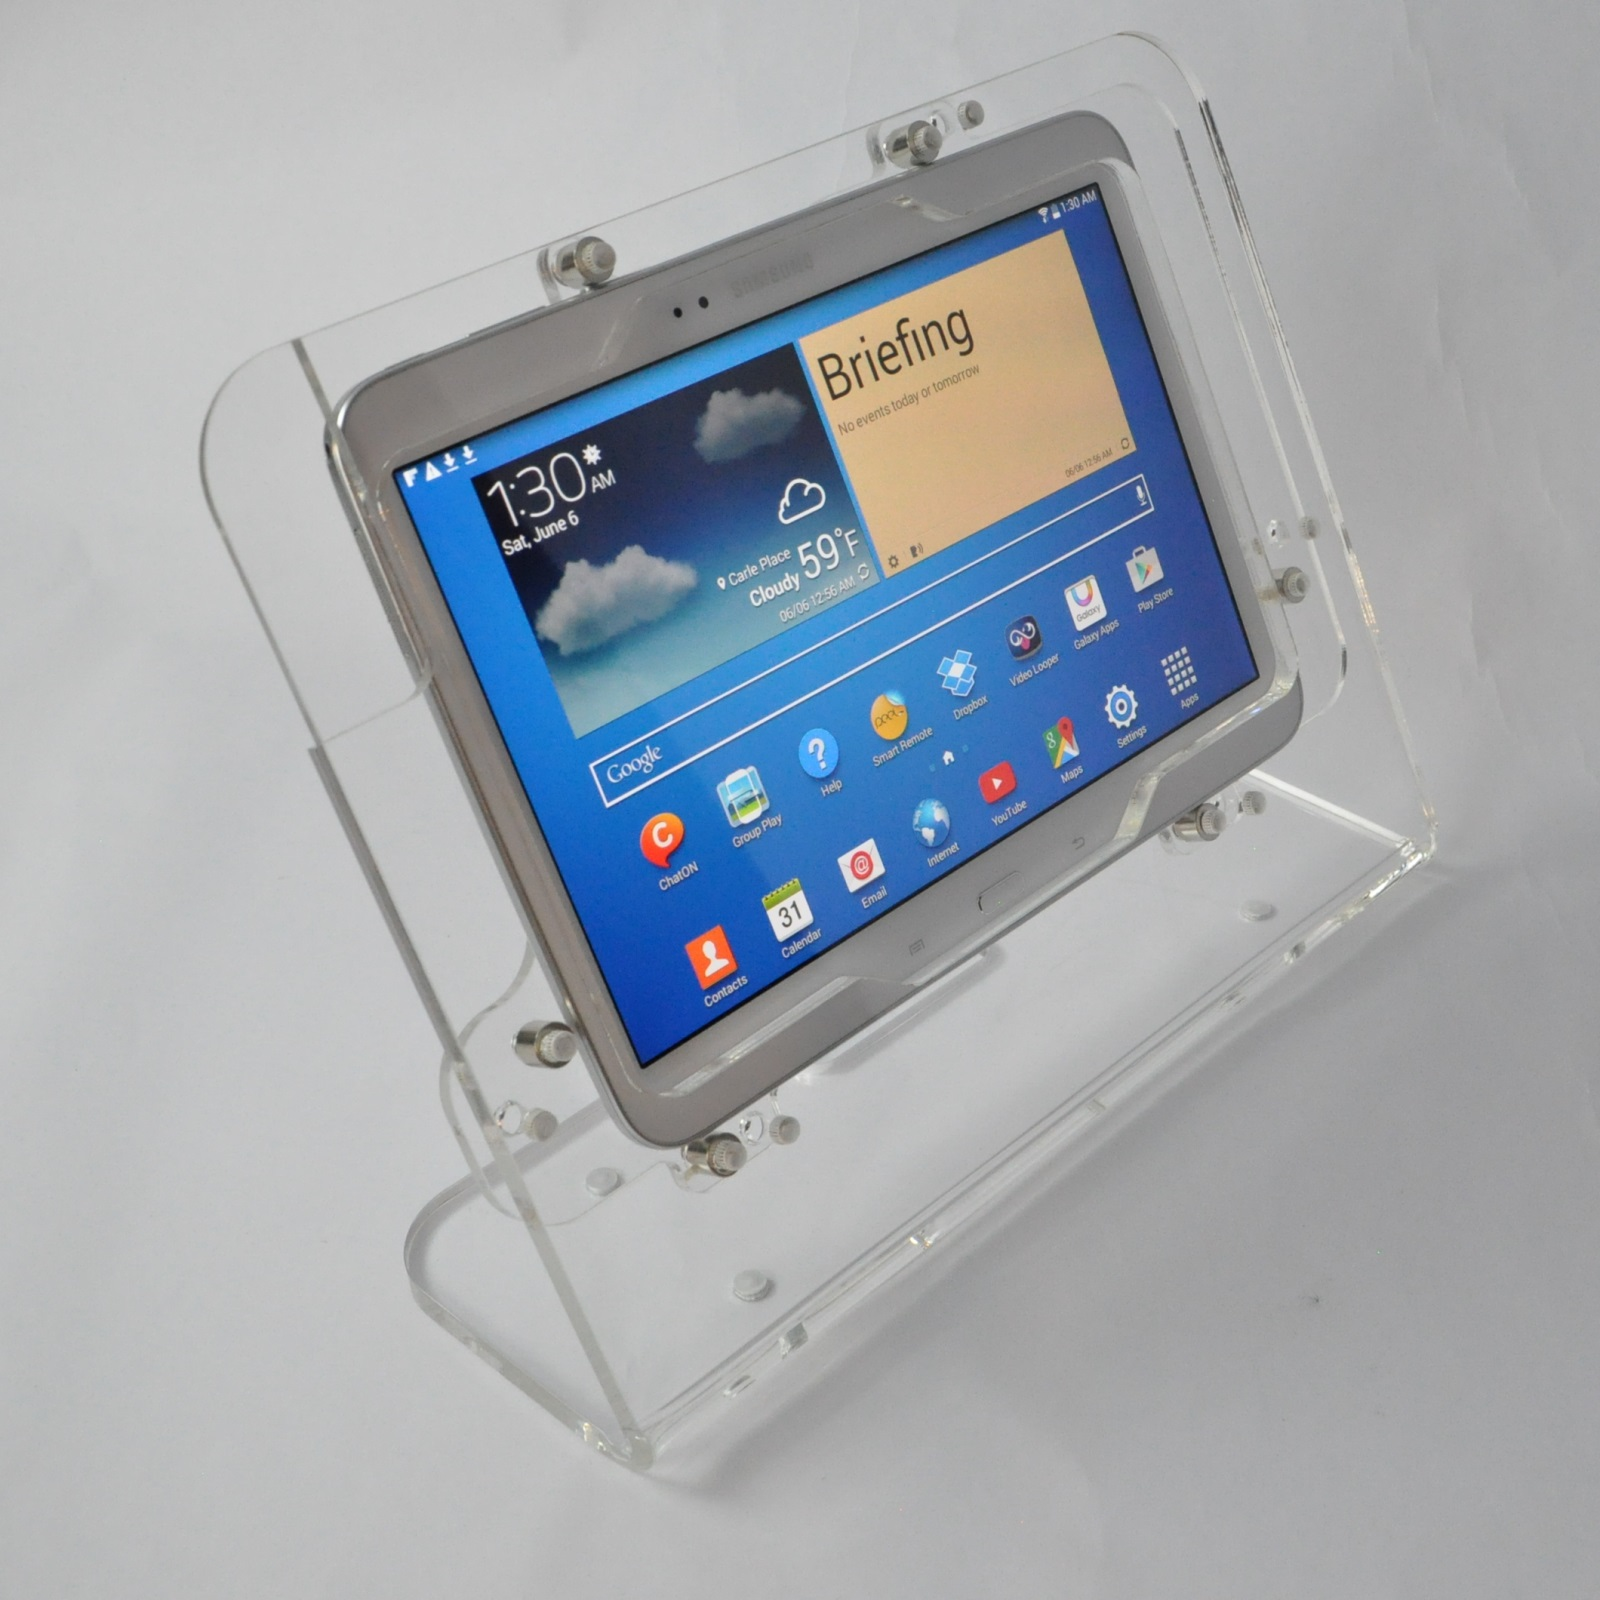 Store POS Galaxy Tab 2 10.1 Note 2013 Security Clear Desktop Stand for Kiosk